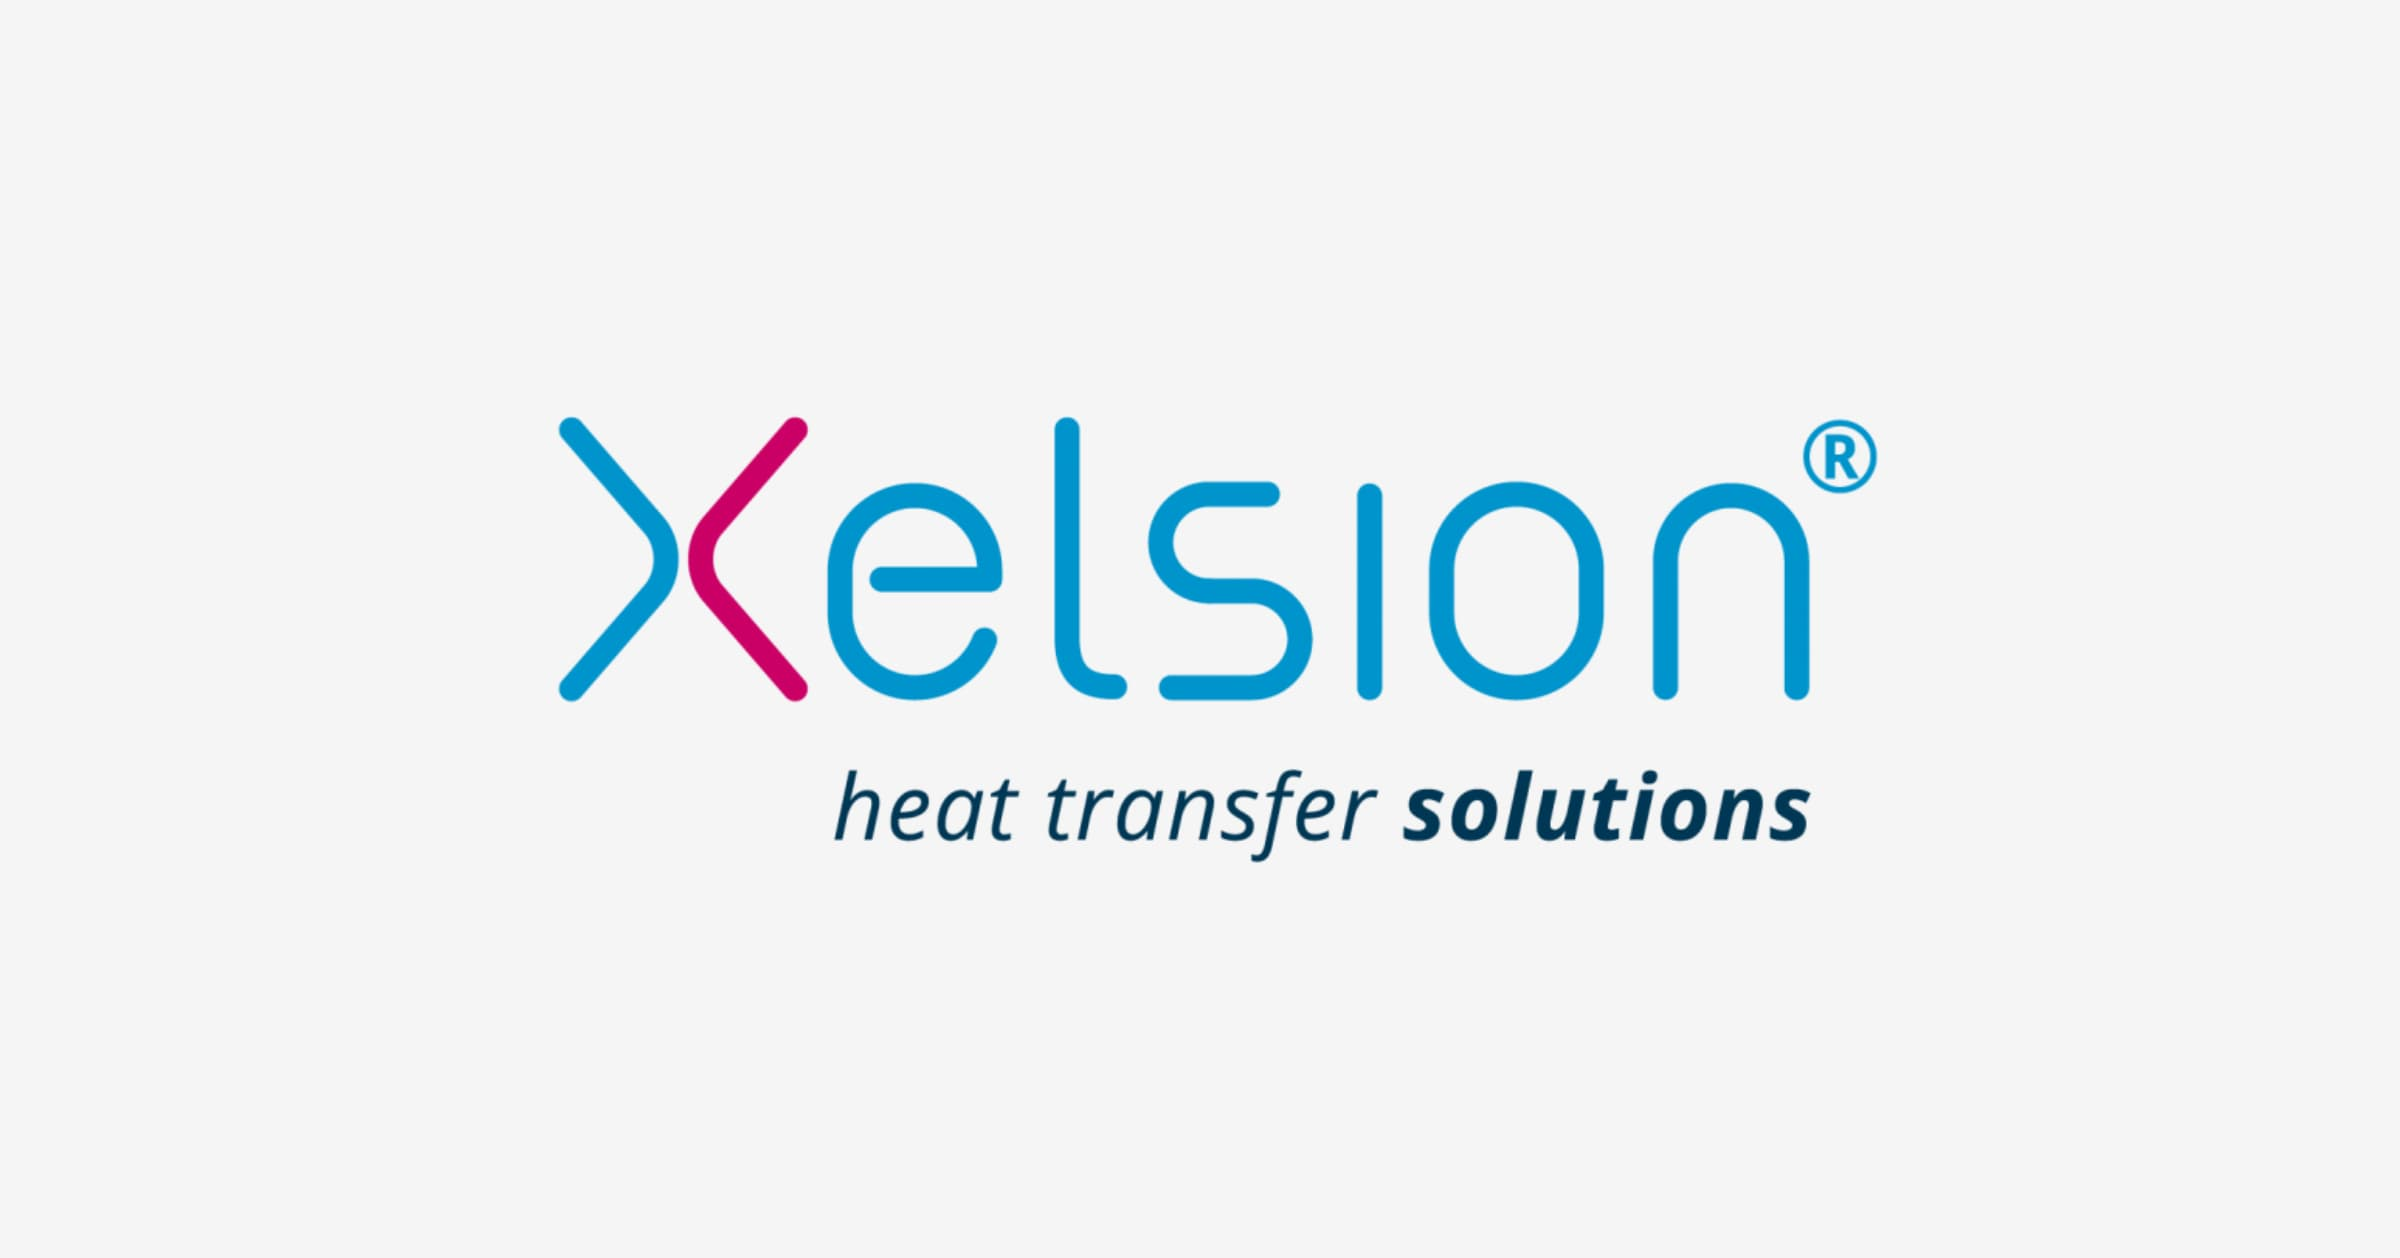 XELSION heat transfer solutions in Hof